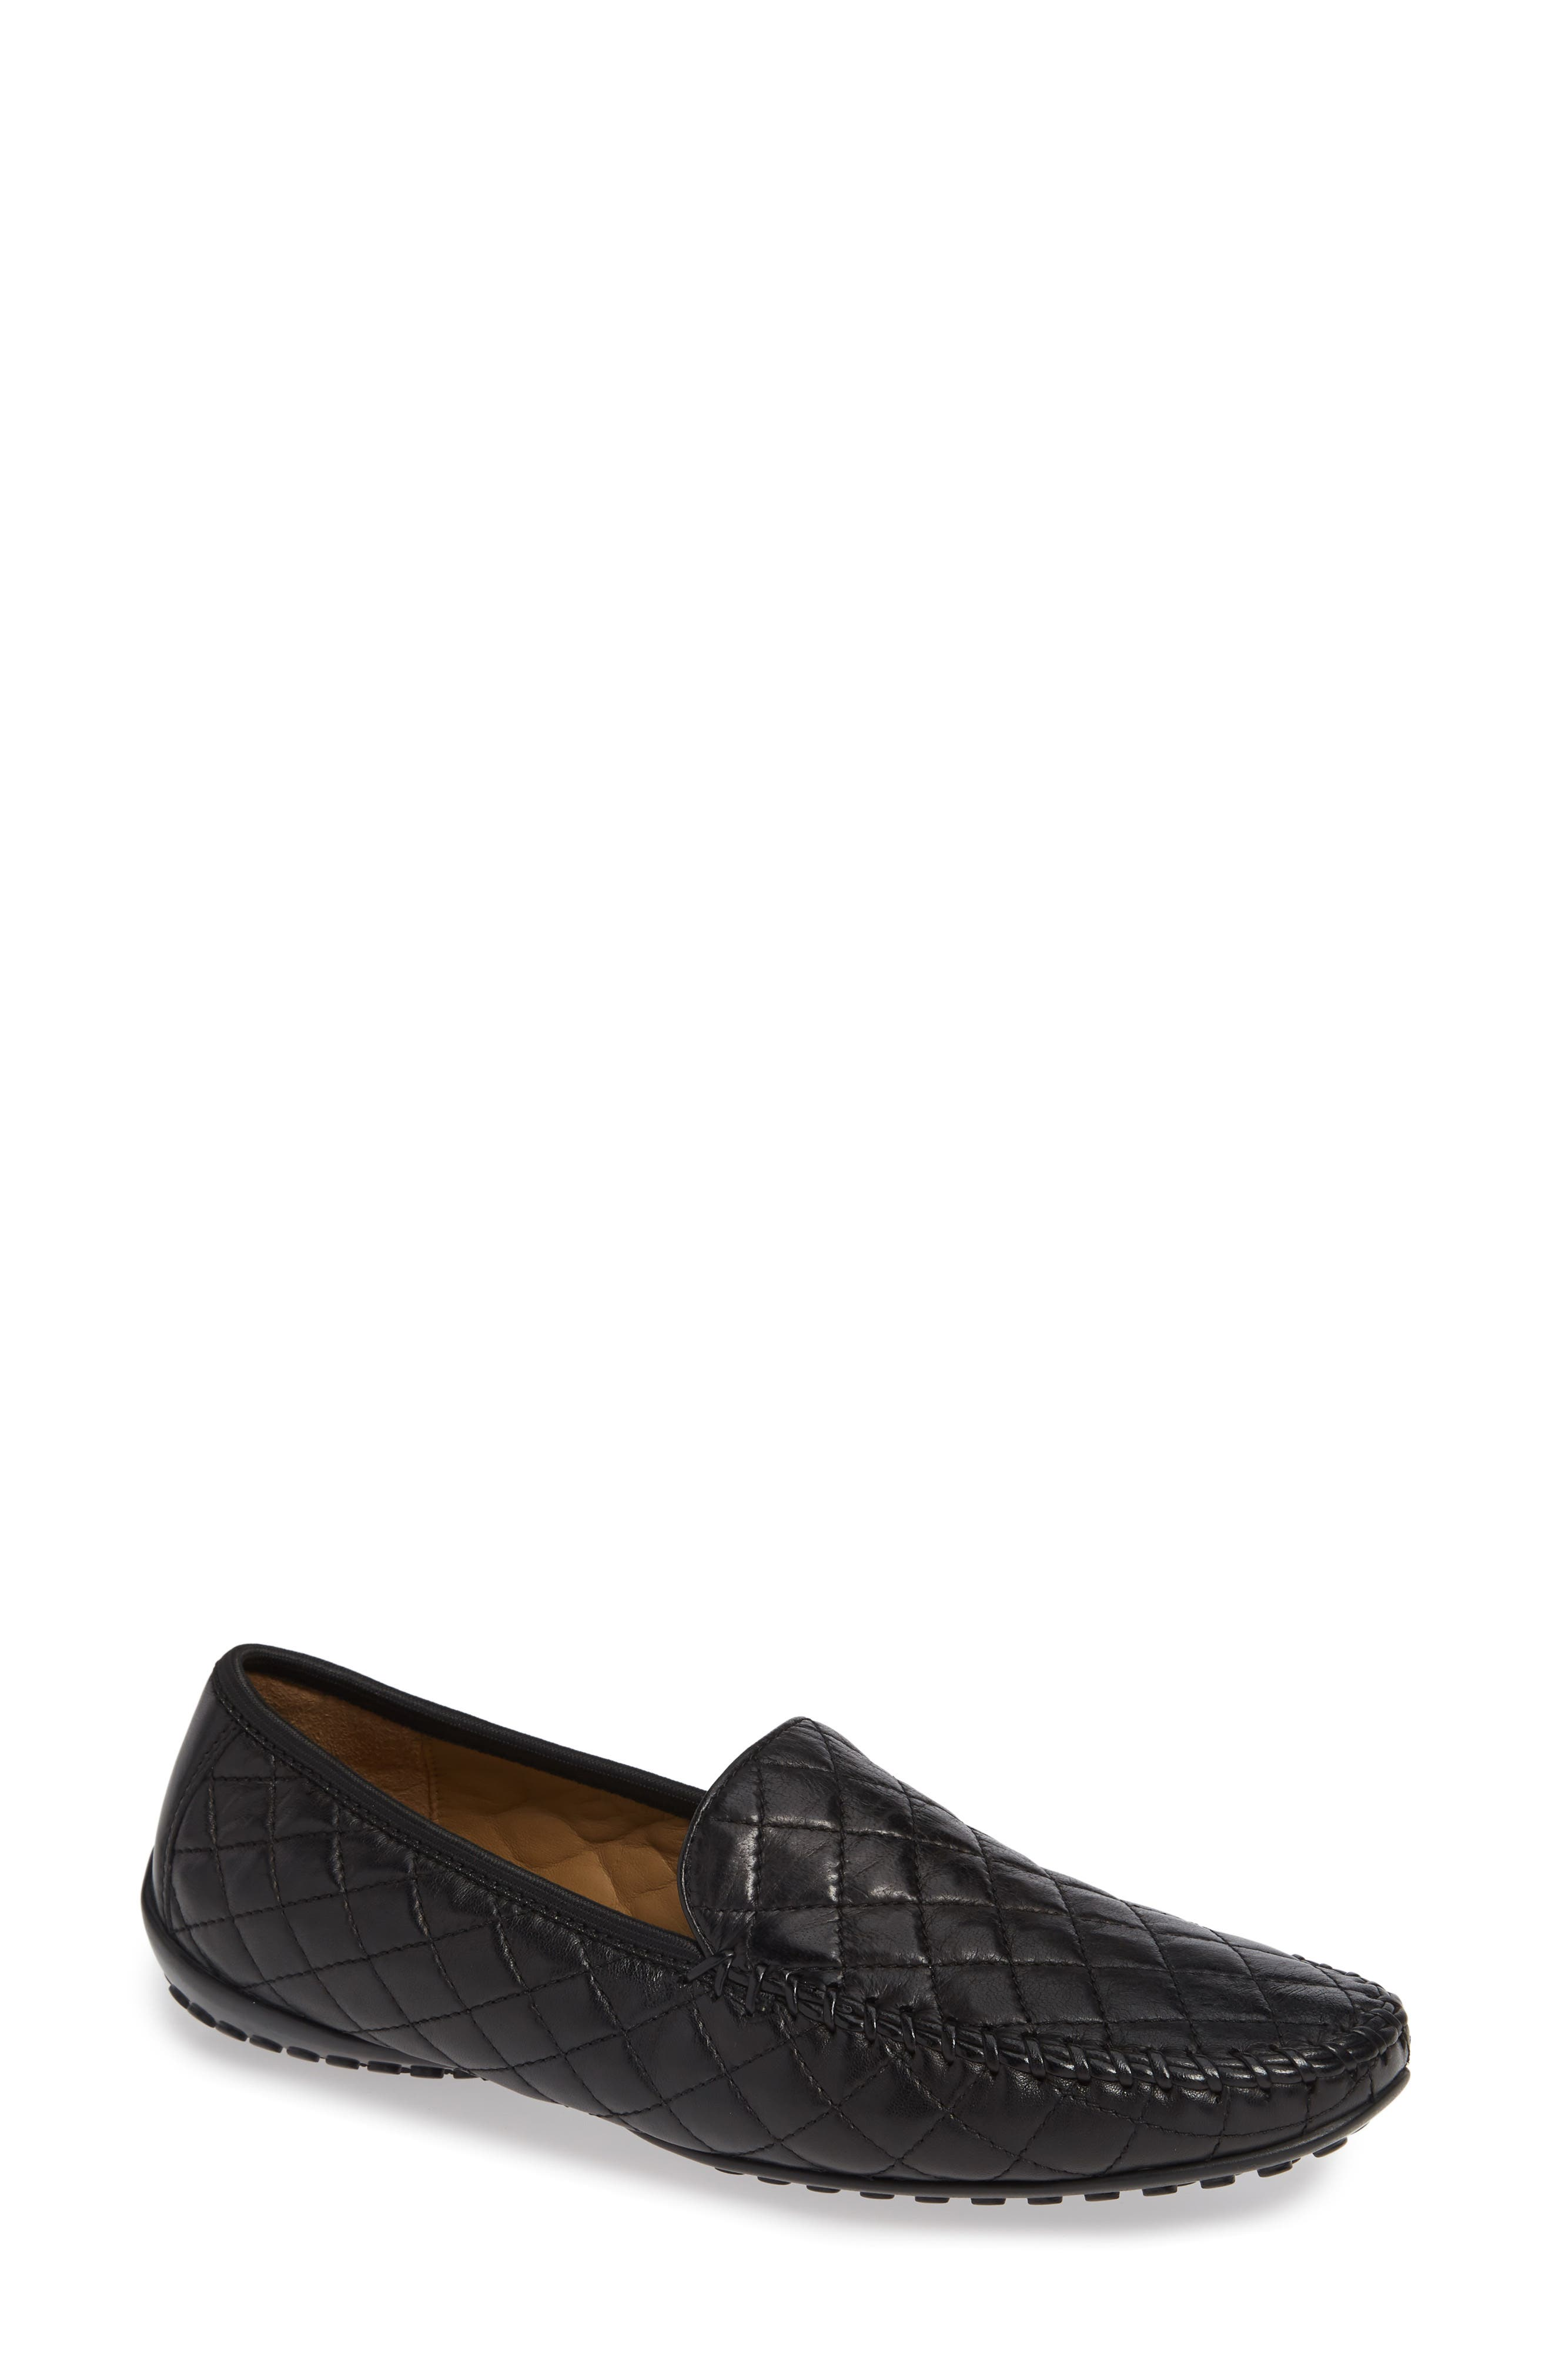 'Quana' Loafer,                             Main thumbnail 1, color,                             BLACK